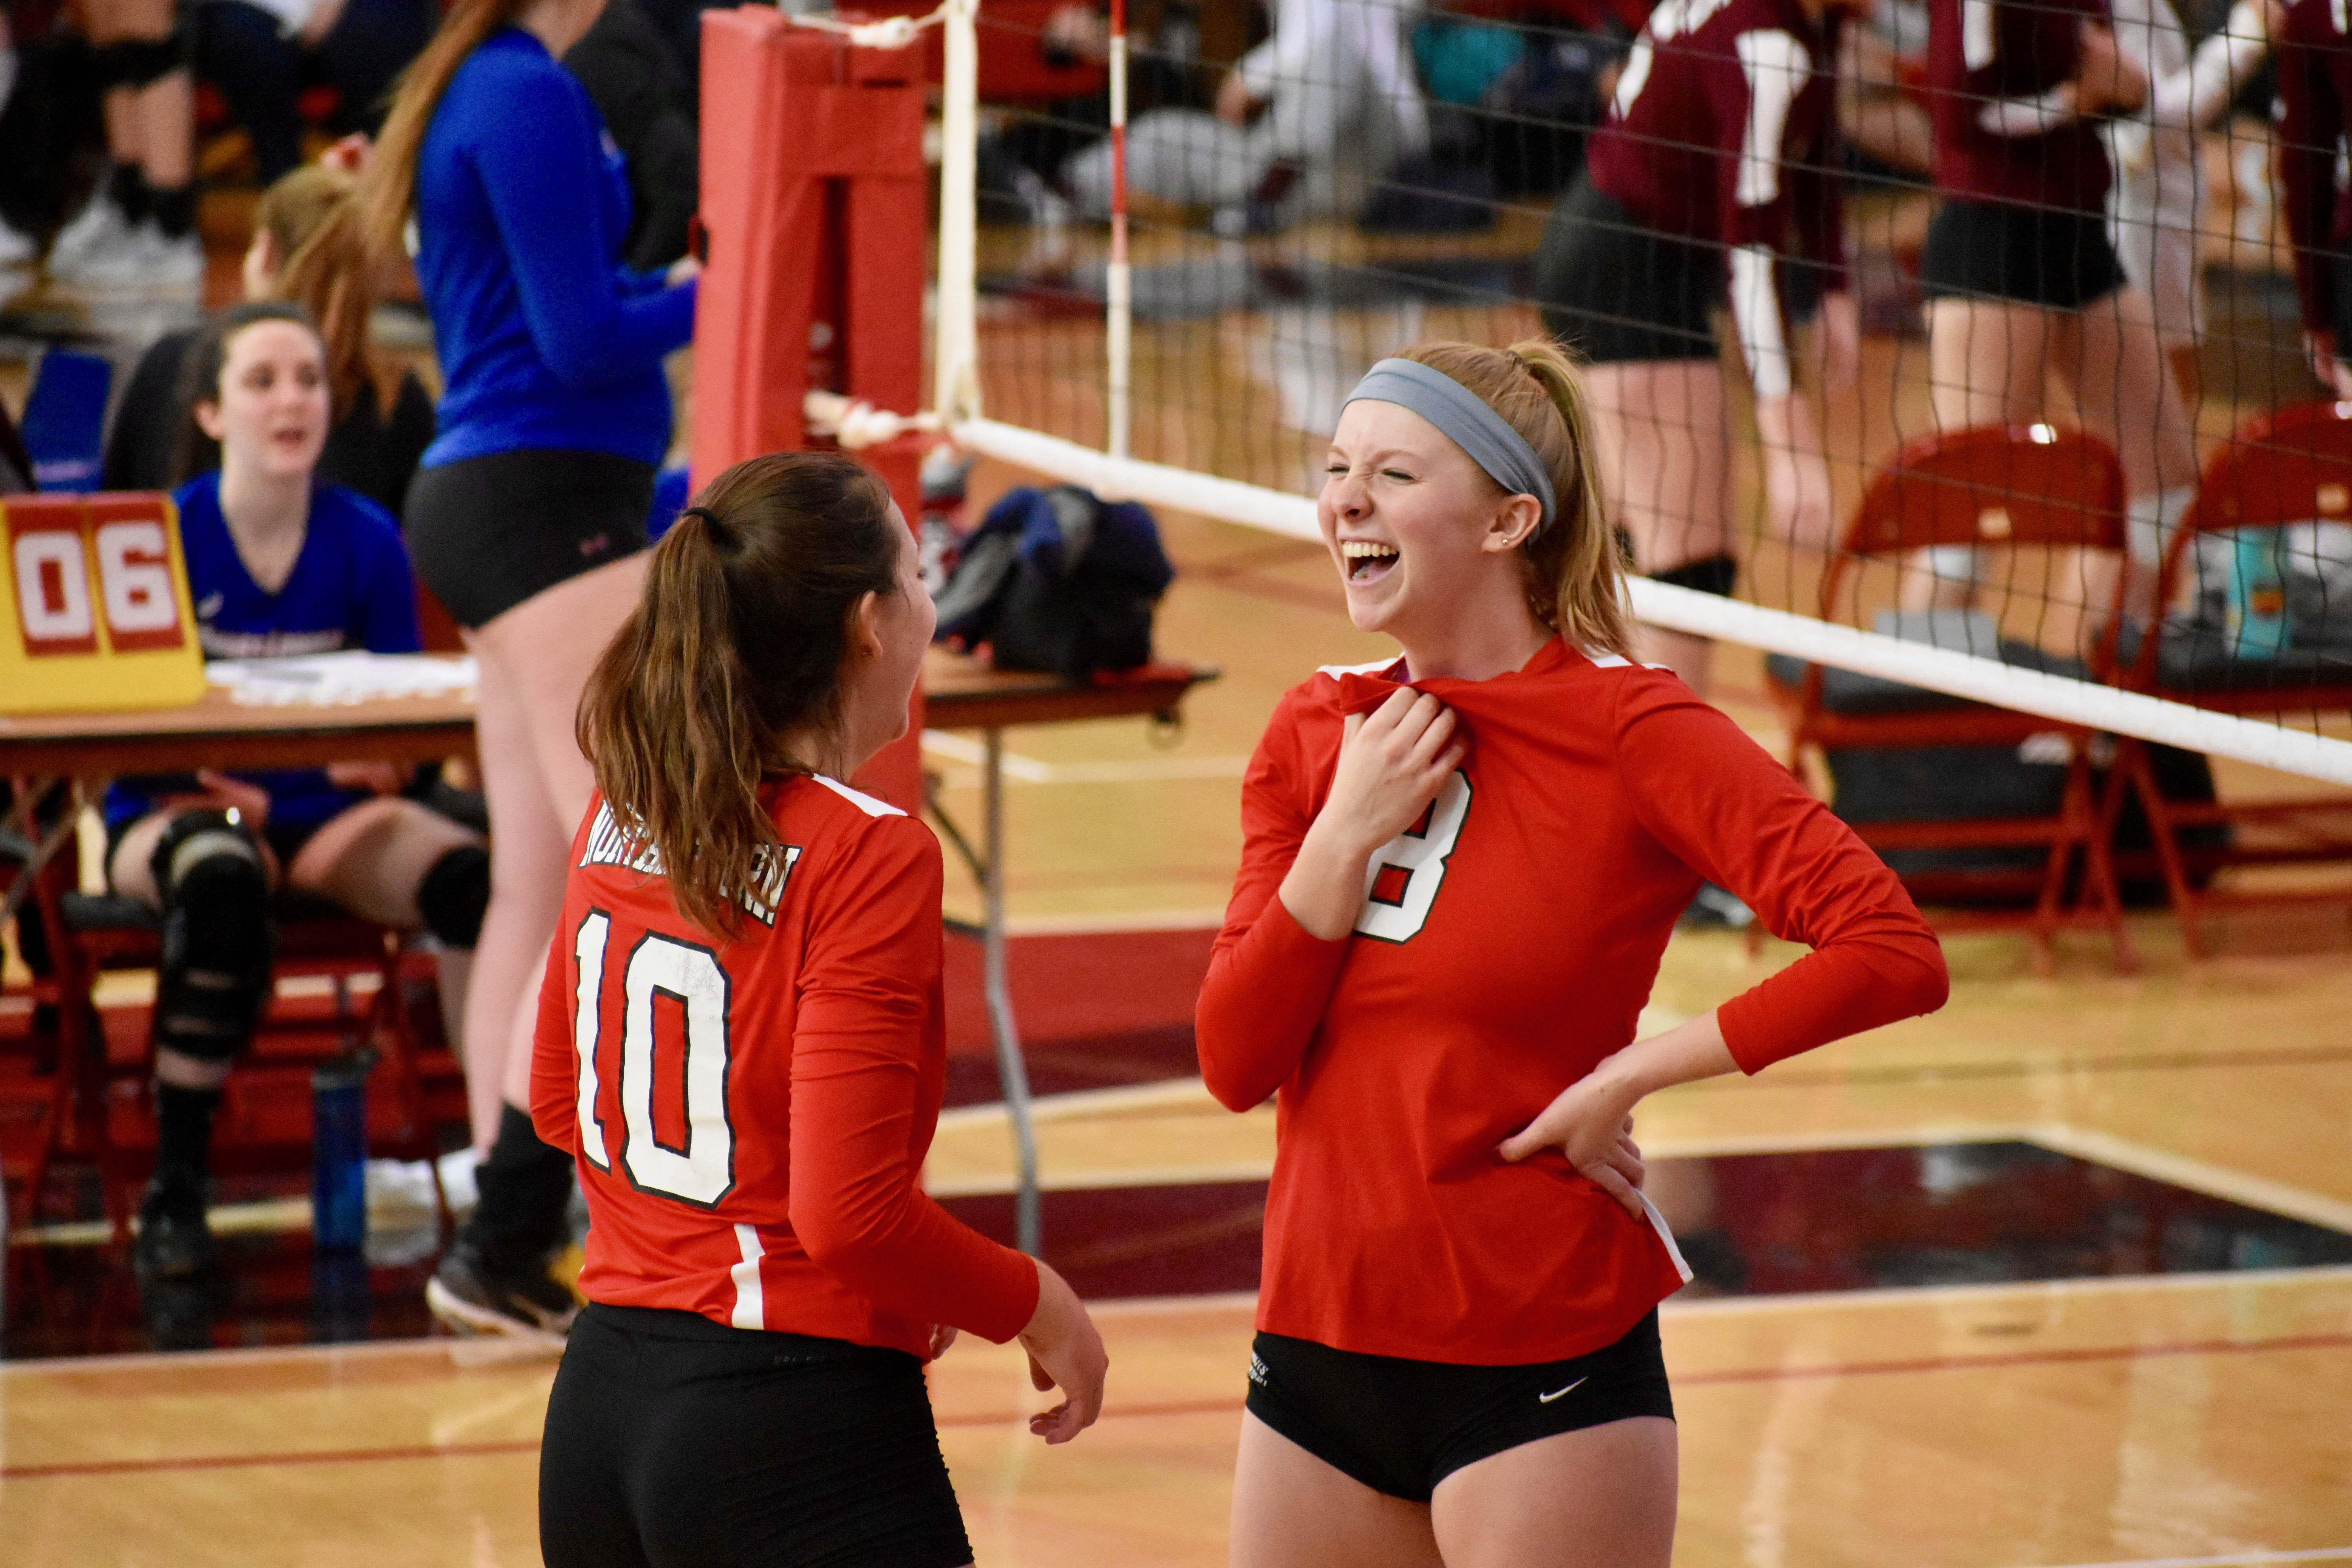 Two teammates mid game laughigh candid